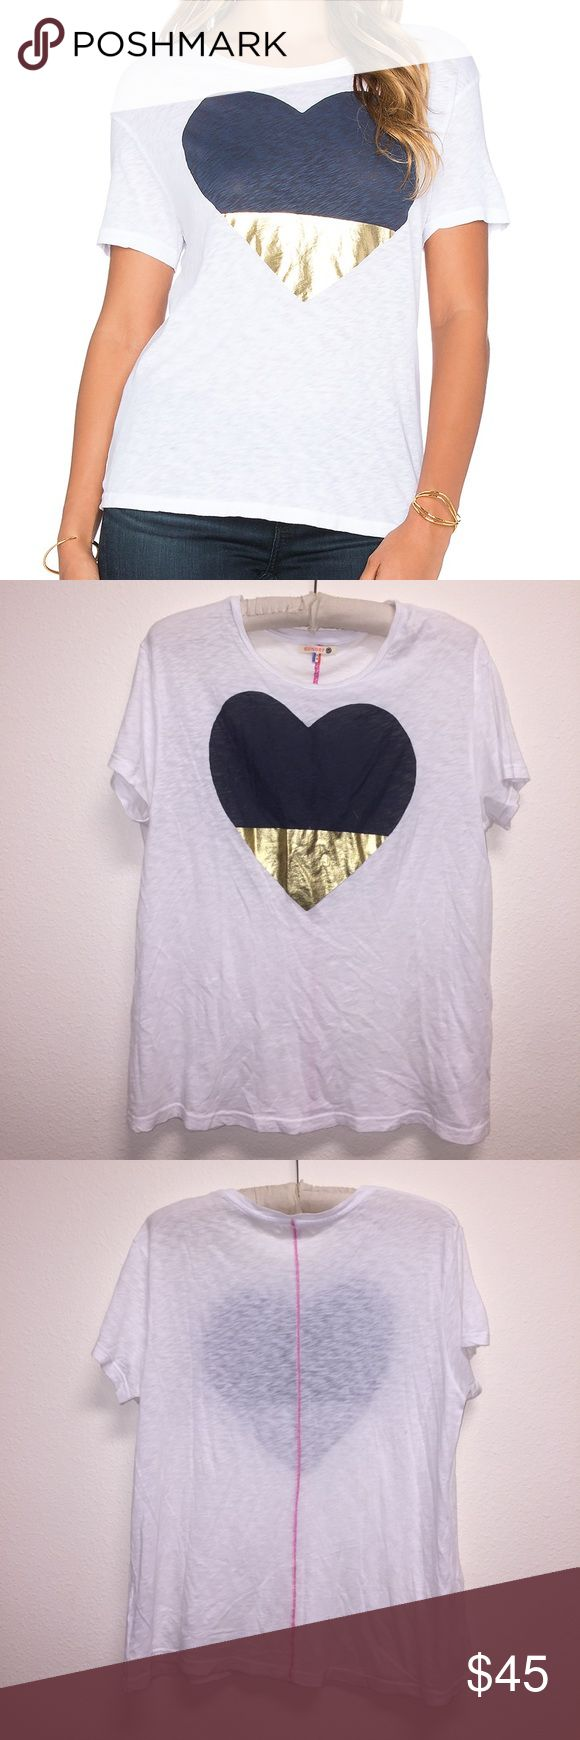 """SUNDRY Two Tone Heart Loose Crew Tee Excellent like new condition! SOLD OUT ONLINE. Says size 2, but fits as a M. Length: 25"""". Bust: 19"""". Feel free to ask any questions! No trades, or model photos sorry! Offers thru offer button only please. Items ship same day M-F if purchased before 4pm PST 😊💕.. Sundry Tops"""